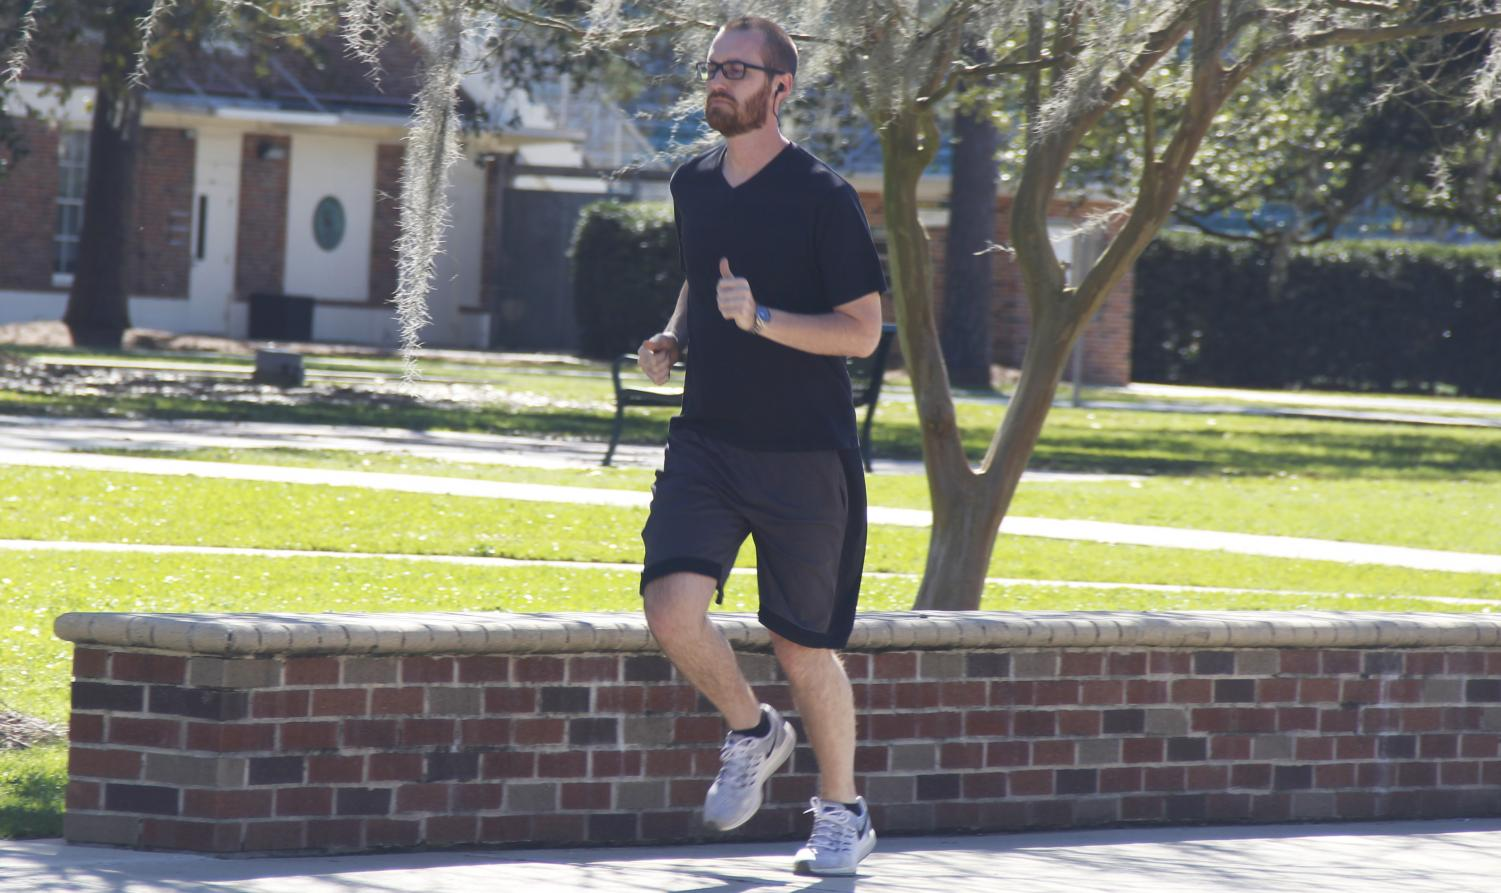 Andrew Belgard, a senior chemistry major, goes for an afternoon run in Friendship Circle. Exercise like running can boost mood due to an increase in endorphin levels along with the muscle workout.